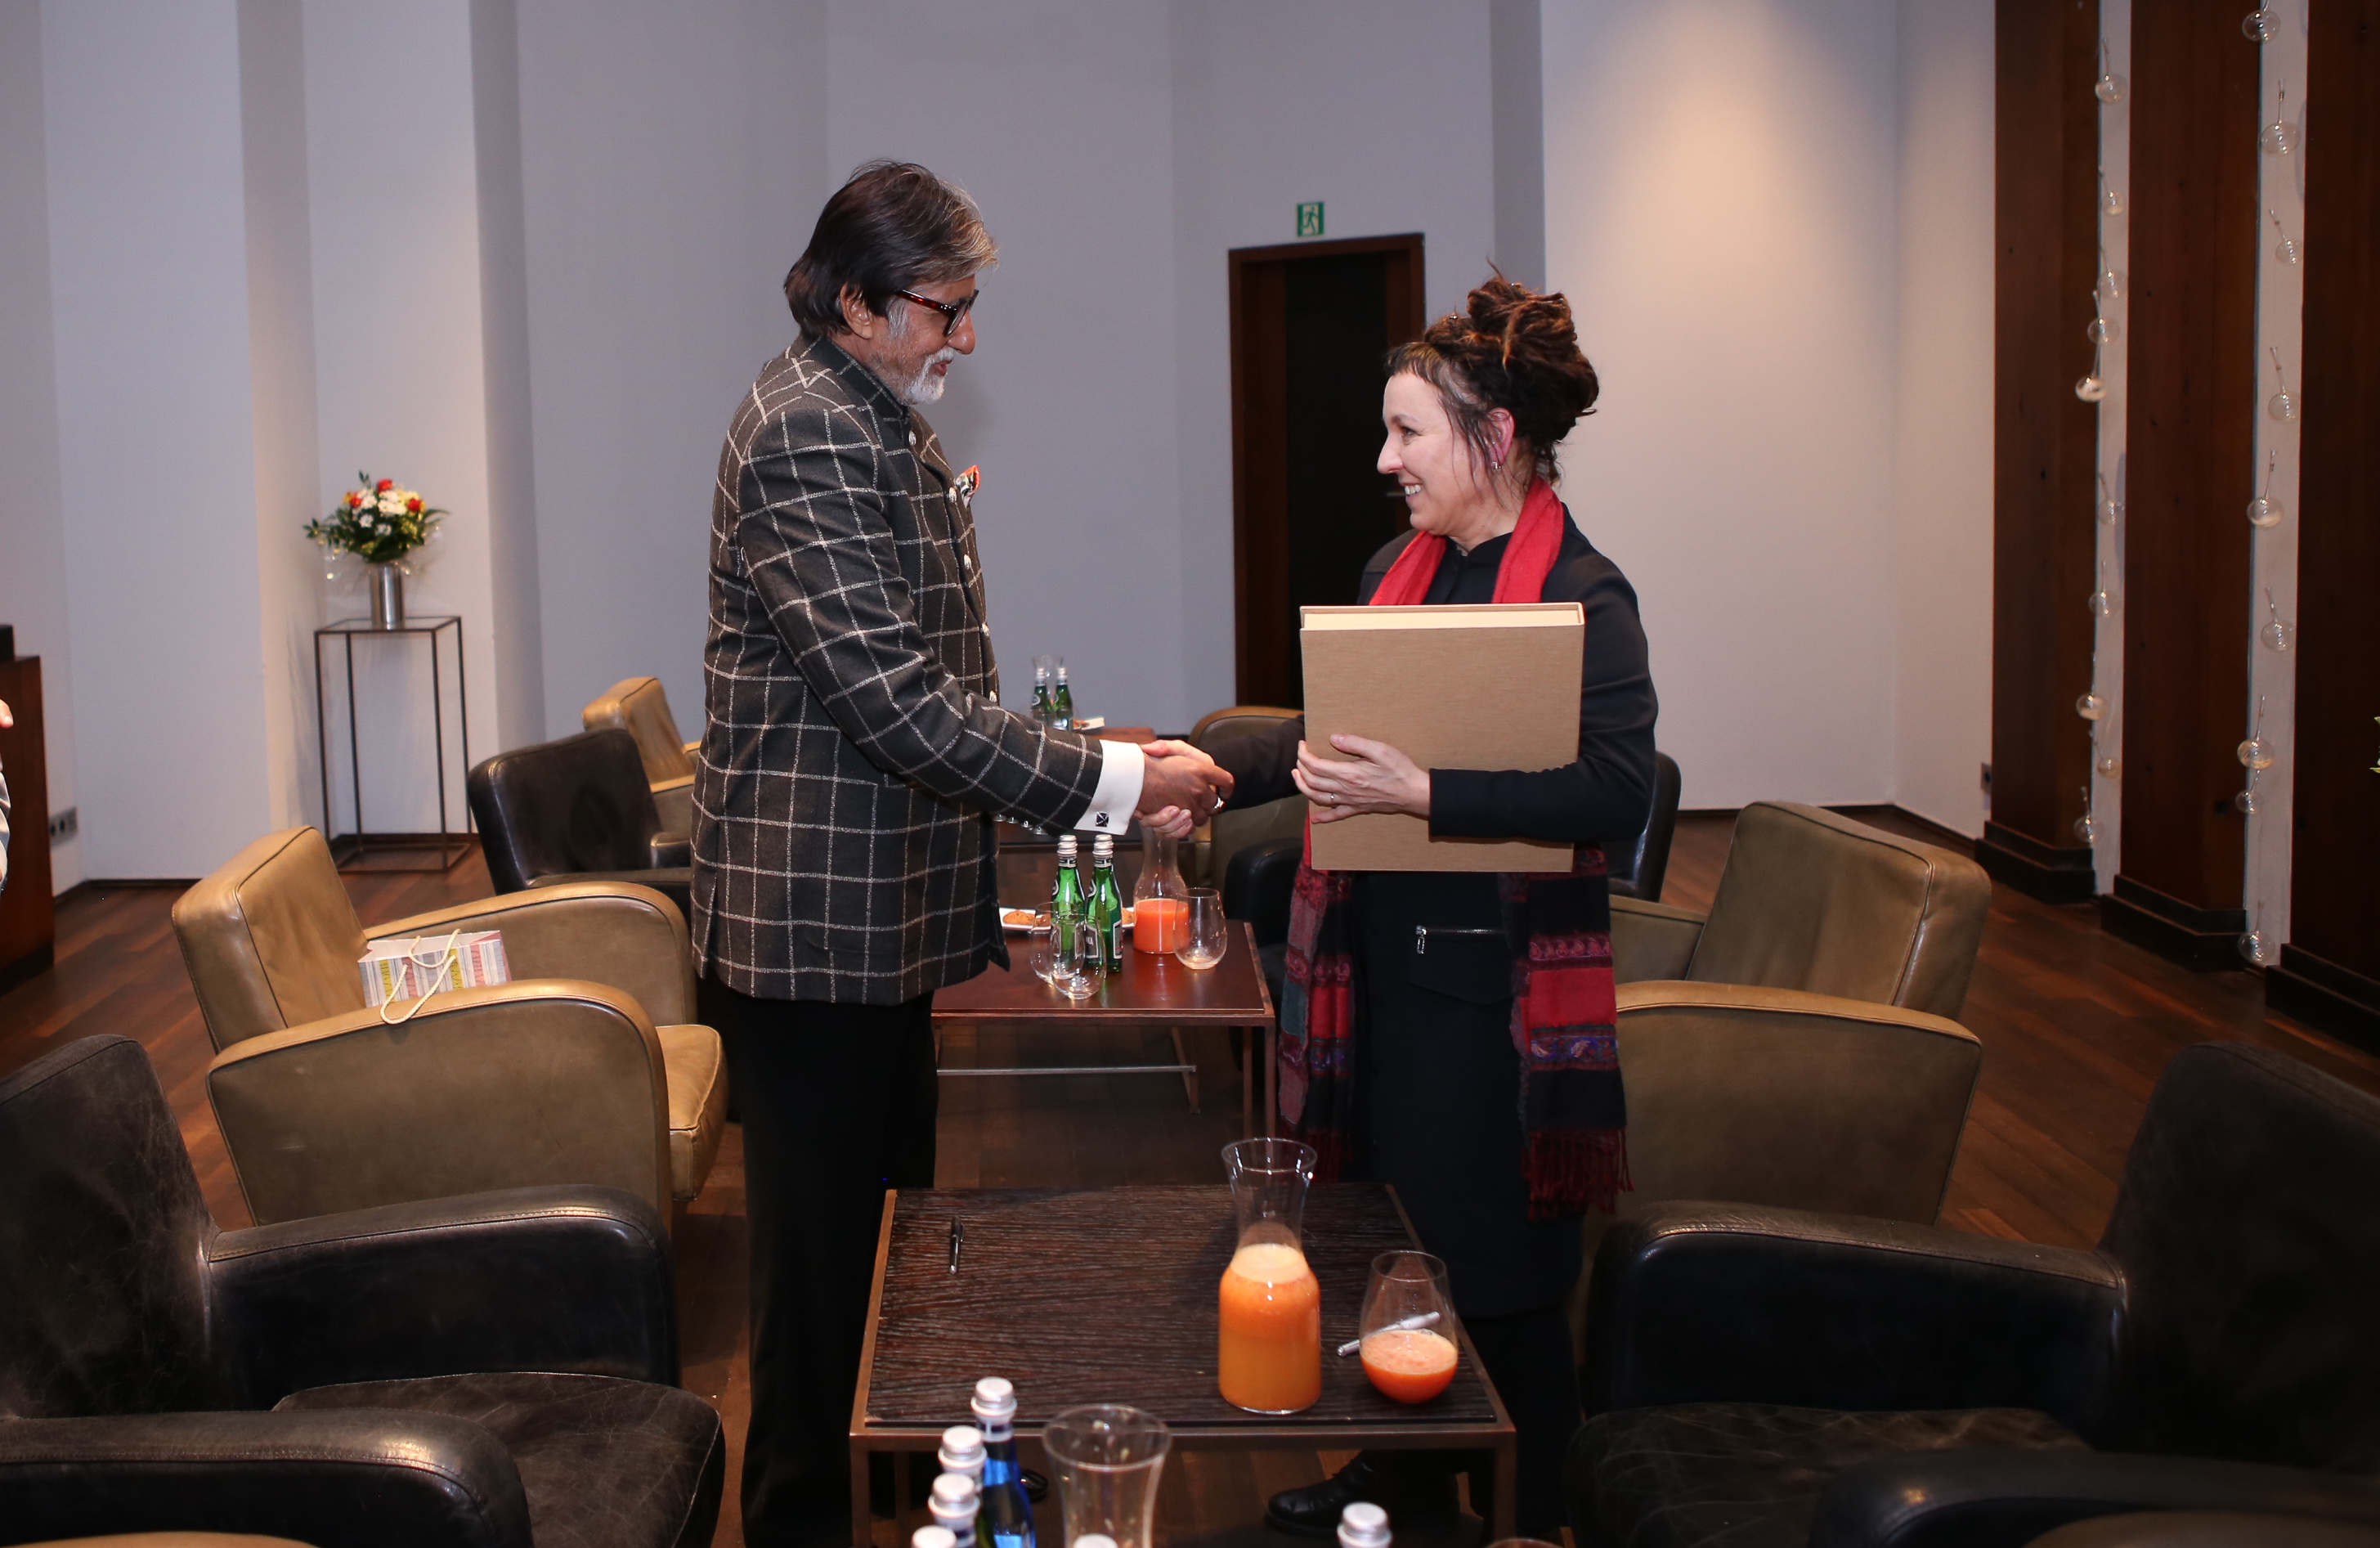 Amitabh Bachchan met Nobel Prize winner for Literature Olga Tokarczuk on a recent visit to Poland